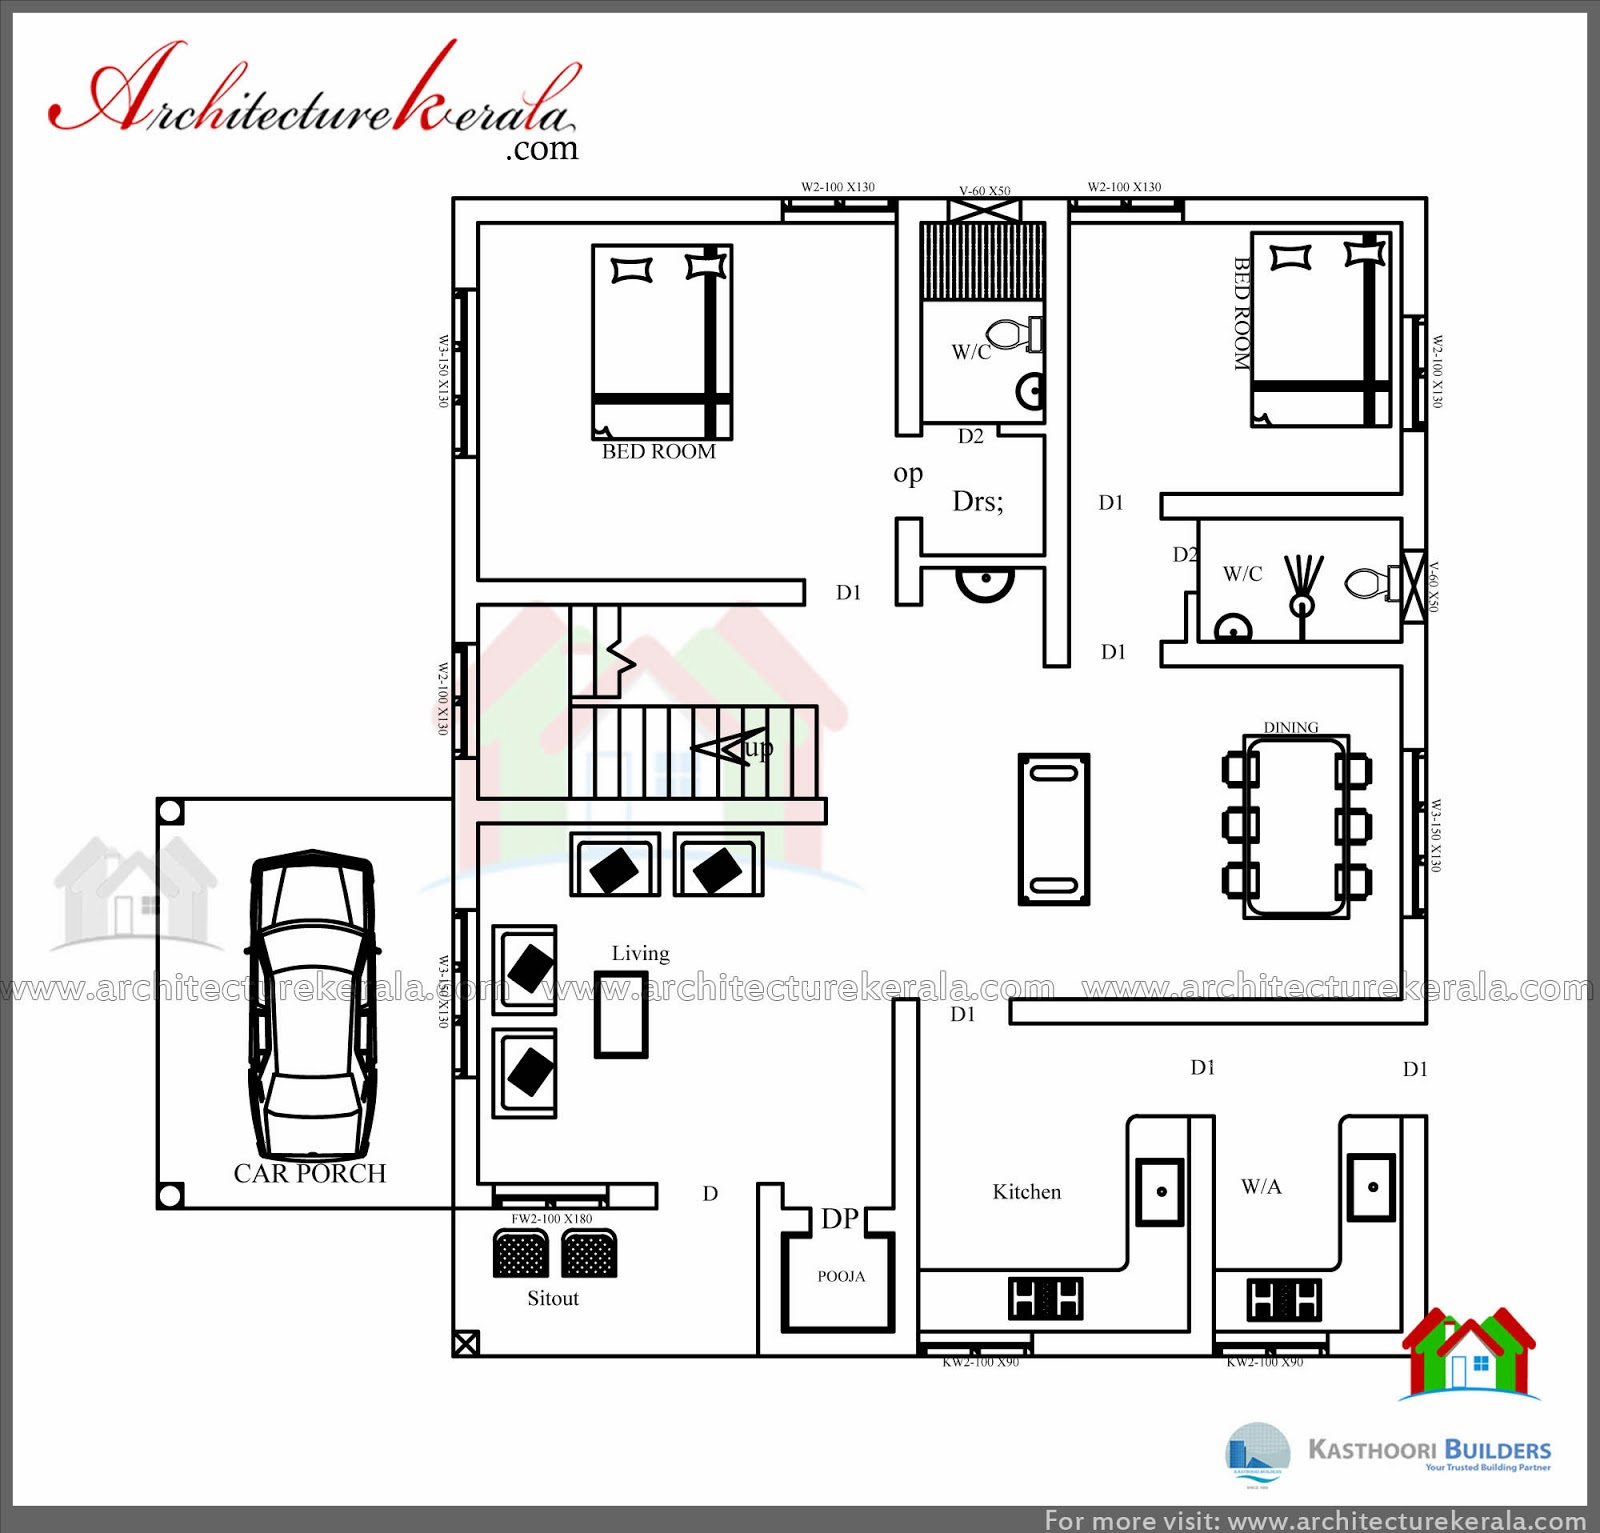 Low cost 3 bedroom kerala house plan with elevation free for Three bedroom house plans kerala style